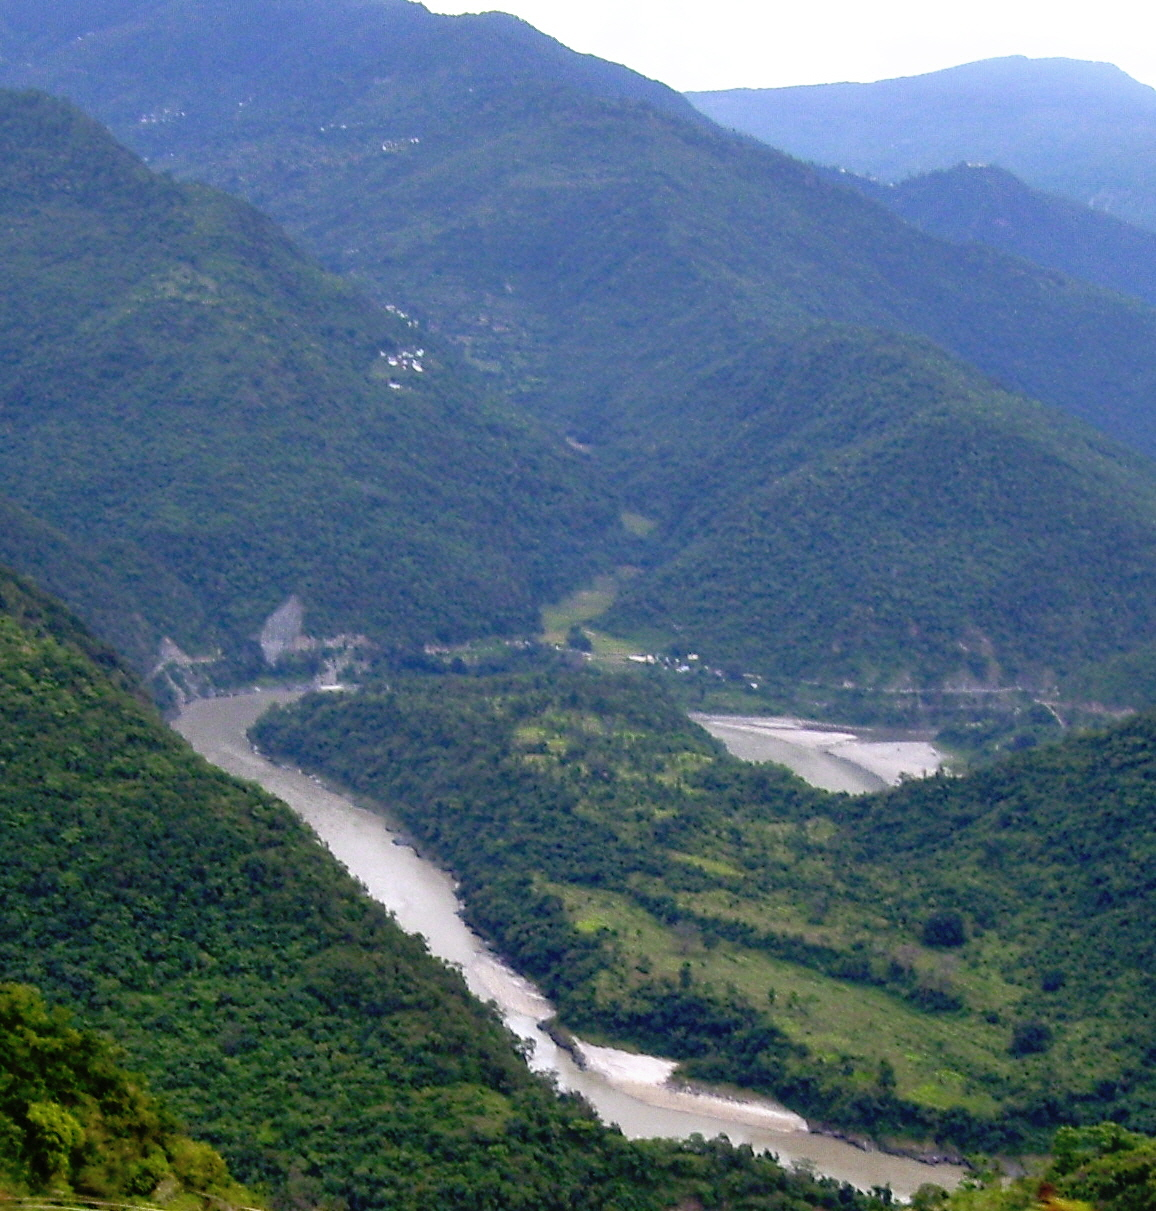 [Ganges headwaters]